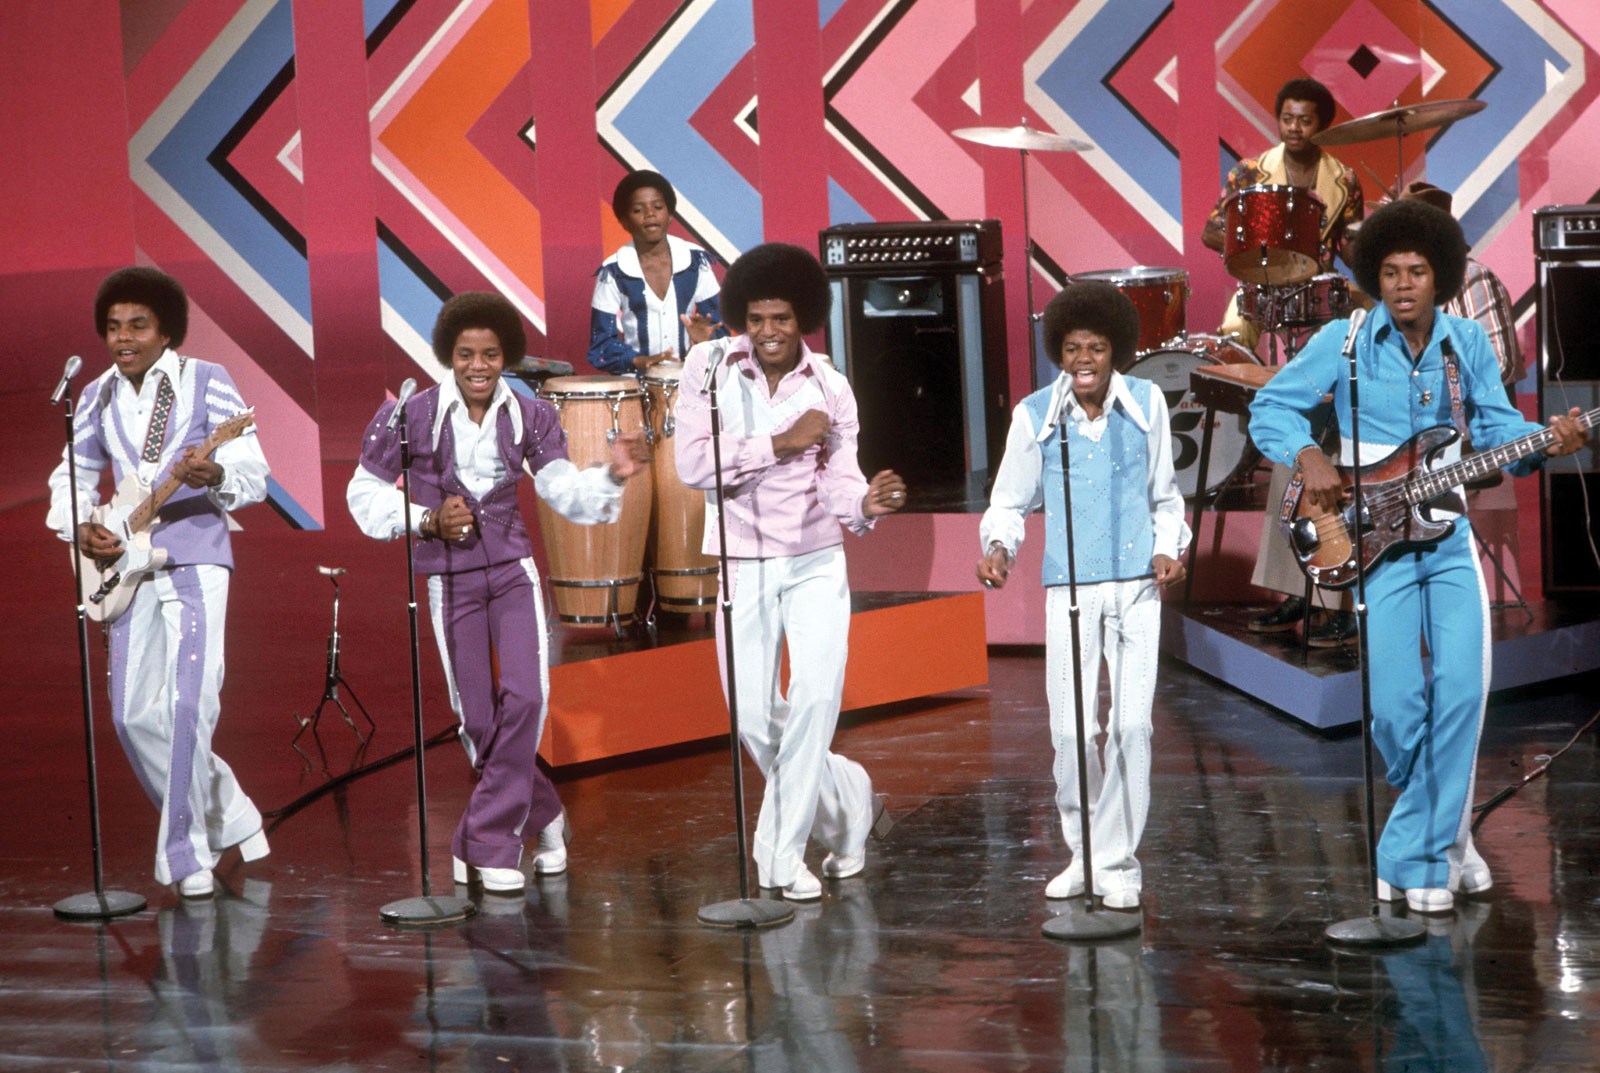 disco in the 1970s The rise of disco in the 1970s had an enormous cultural impact on the american  audience it was the music they heard on the radio, the music they danced to.